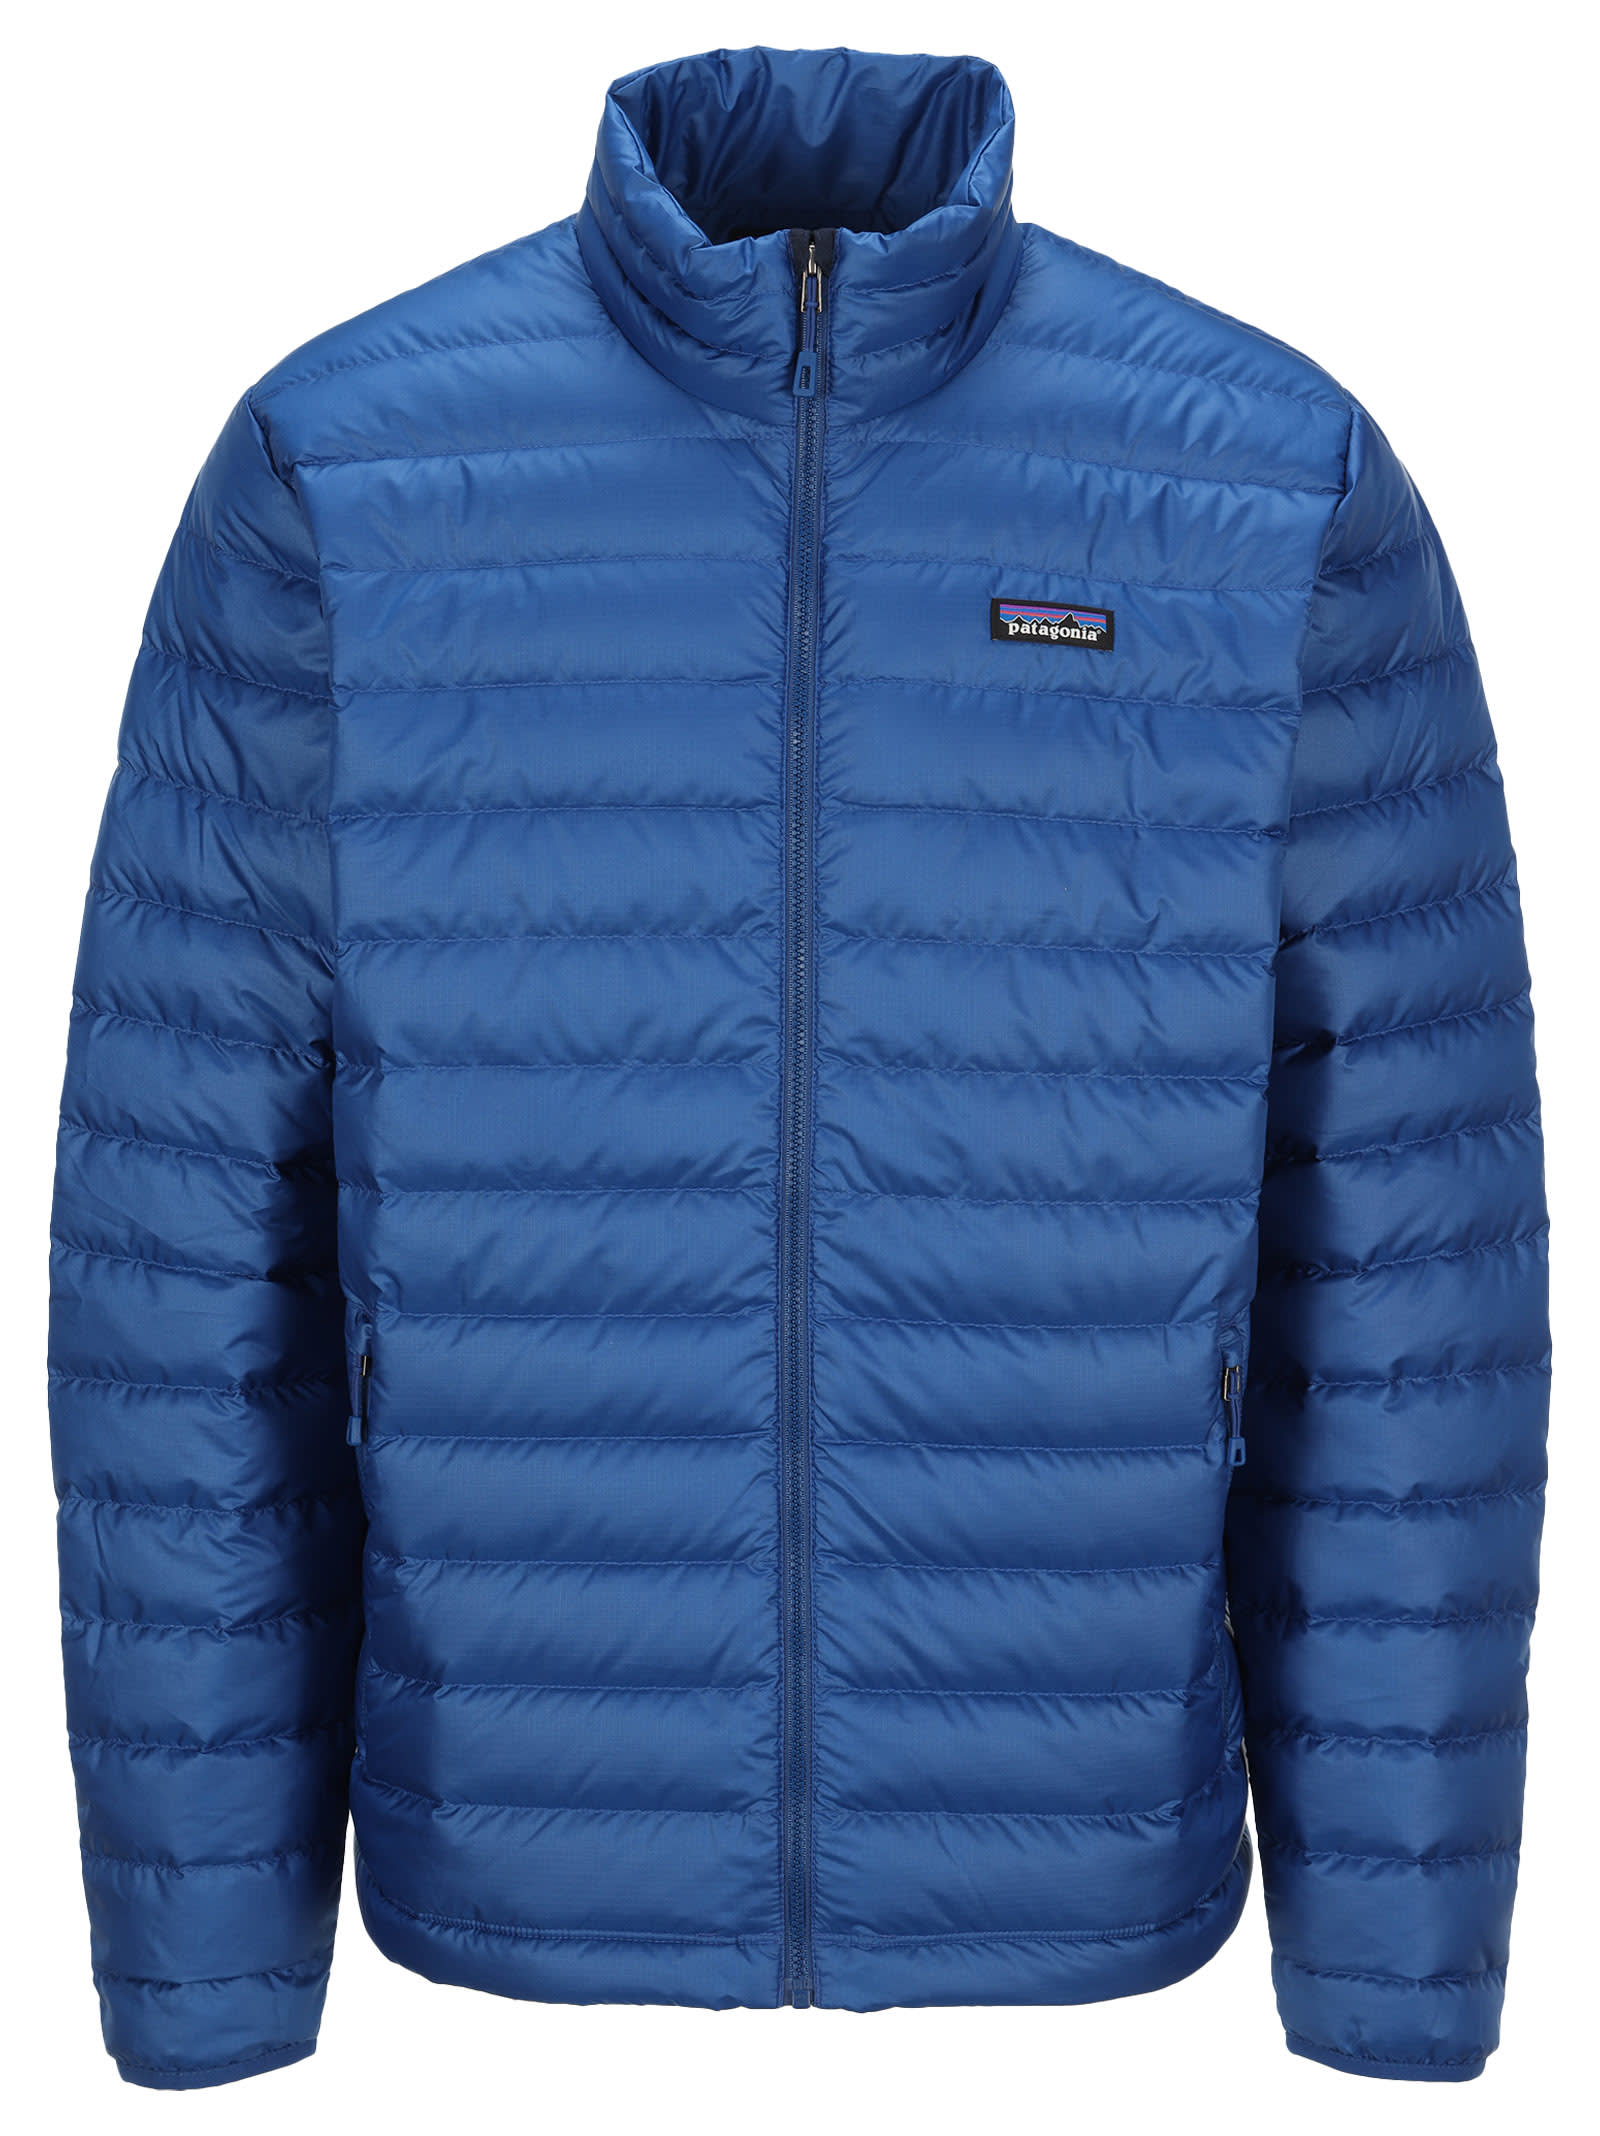 Down Jacket By Patagonia. Featuring: - Front Zip Fastening; - Logo Patch At The Chest; - Side Zip Pockets; - Long Sleeves. Composition: 100% RECYCLED POLYESTER - PADDING:, 90% DOWN, 10% FEATHER